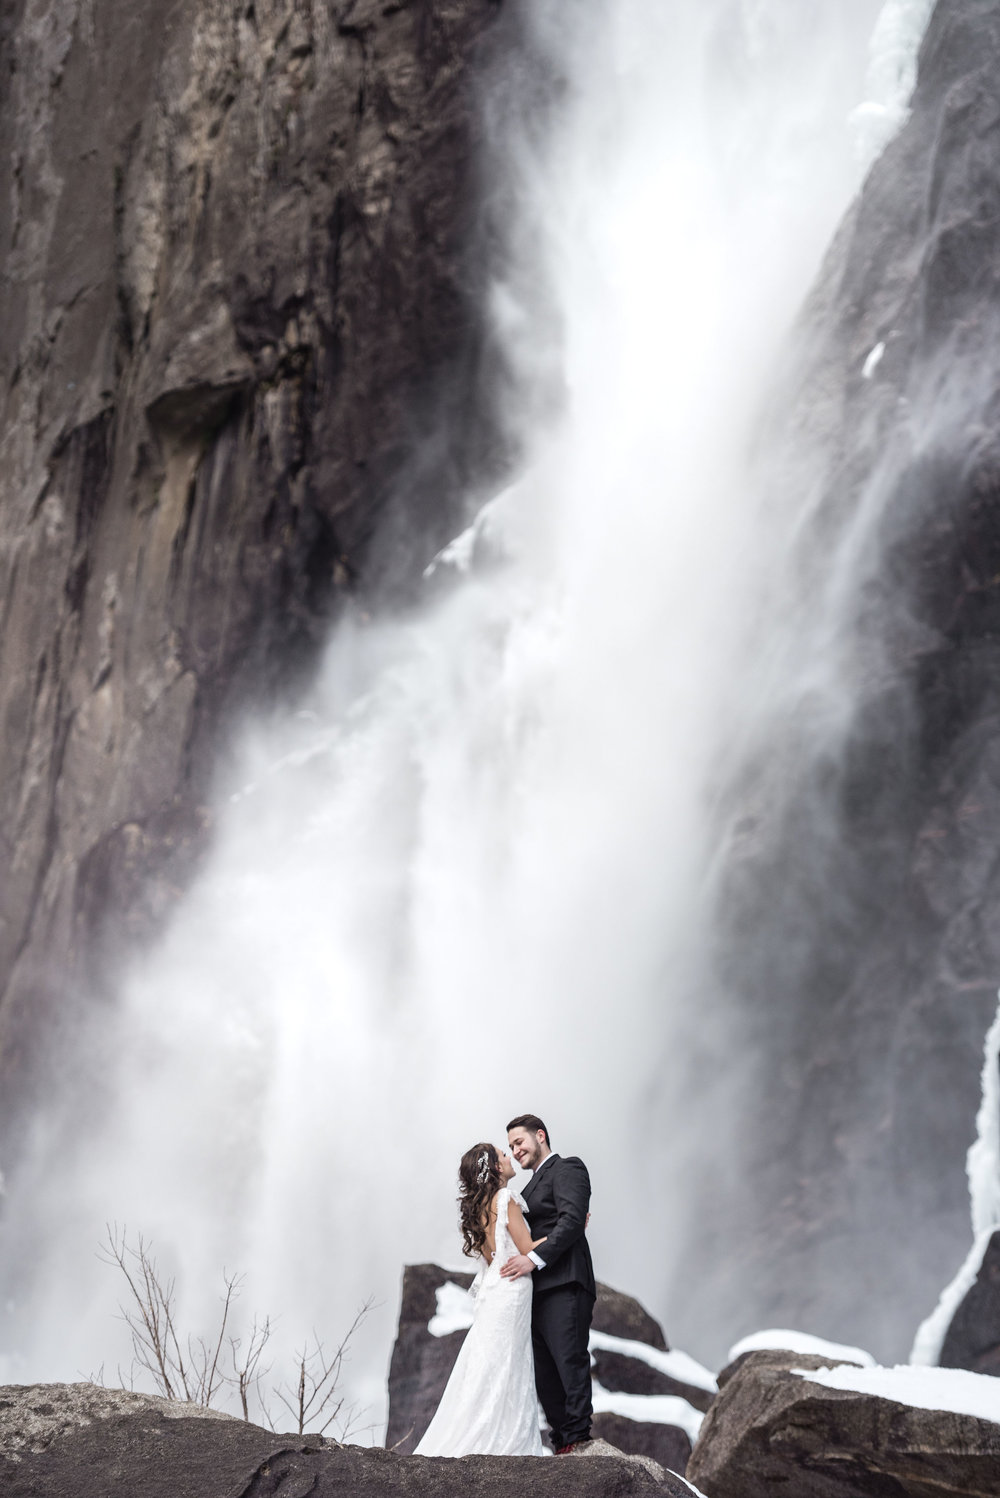 we love adventure! - Did you know we are destination wedding planners, too? We encourage travel to wild and exotic places and love to be part of elopements!